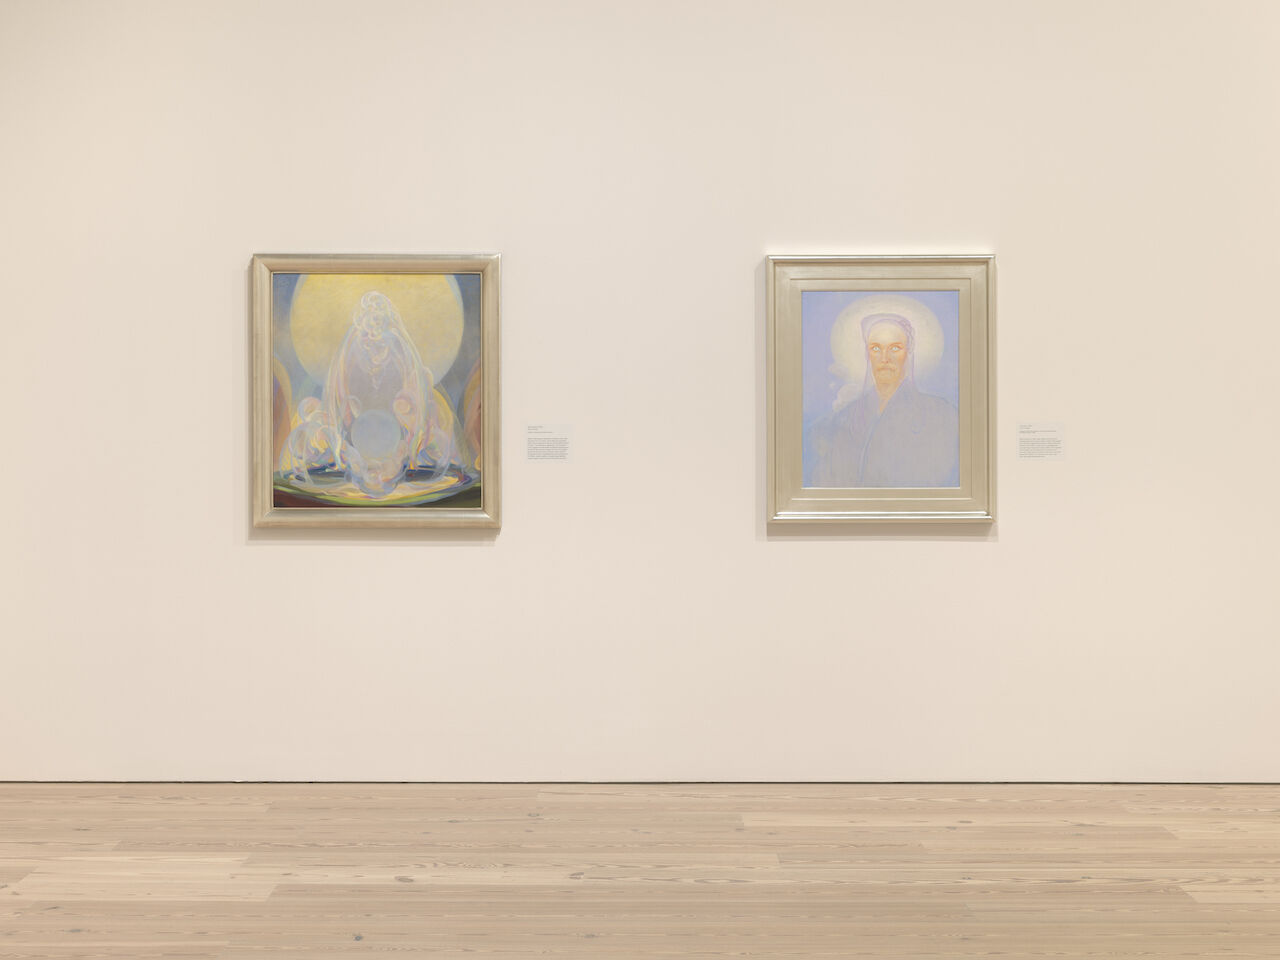 Two paintings by Agnes Pelton are directly in view a few feet away on a white wall at the Whitney. The paintings from left to right are The Fountains, 1926 and Intimation, 1933.